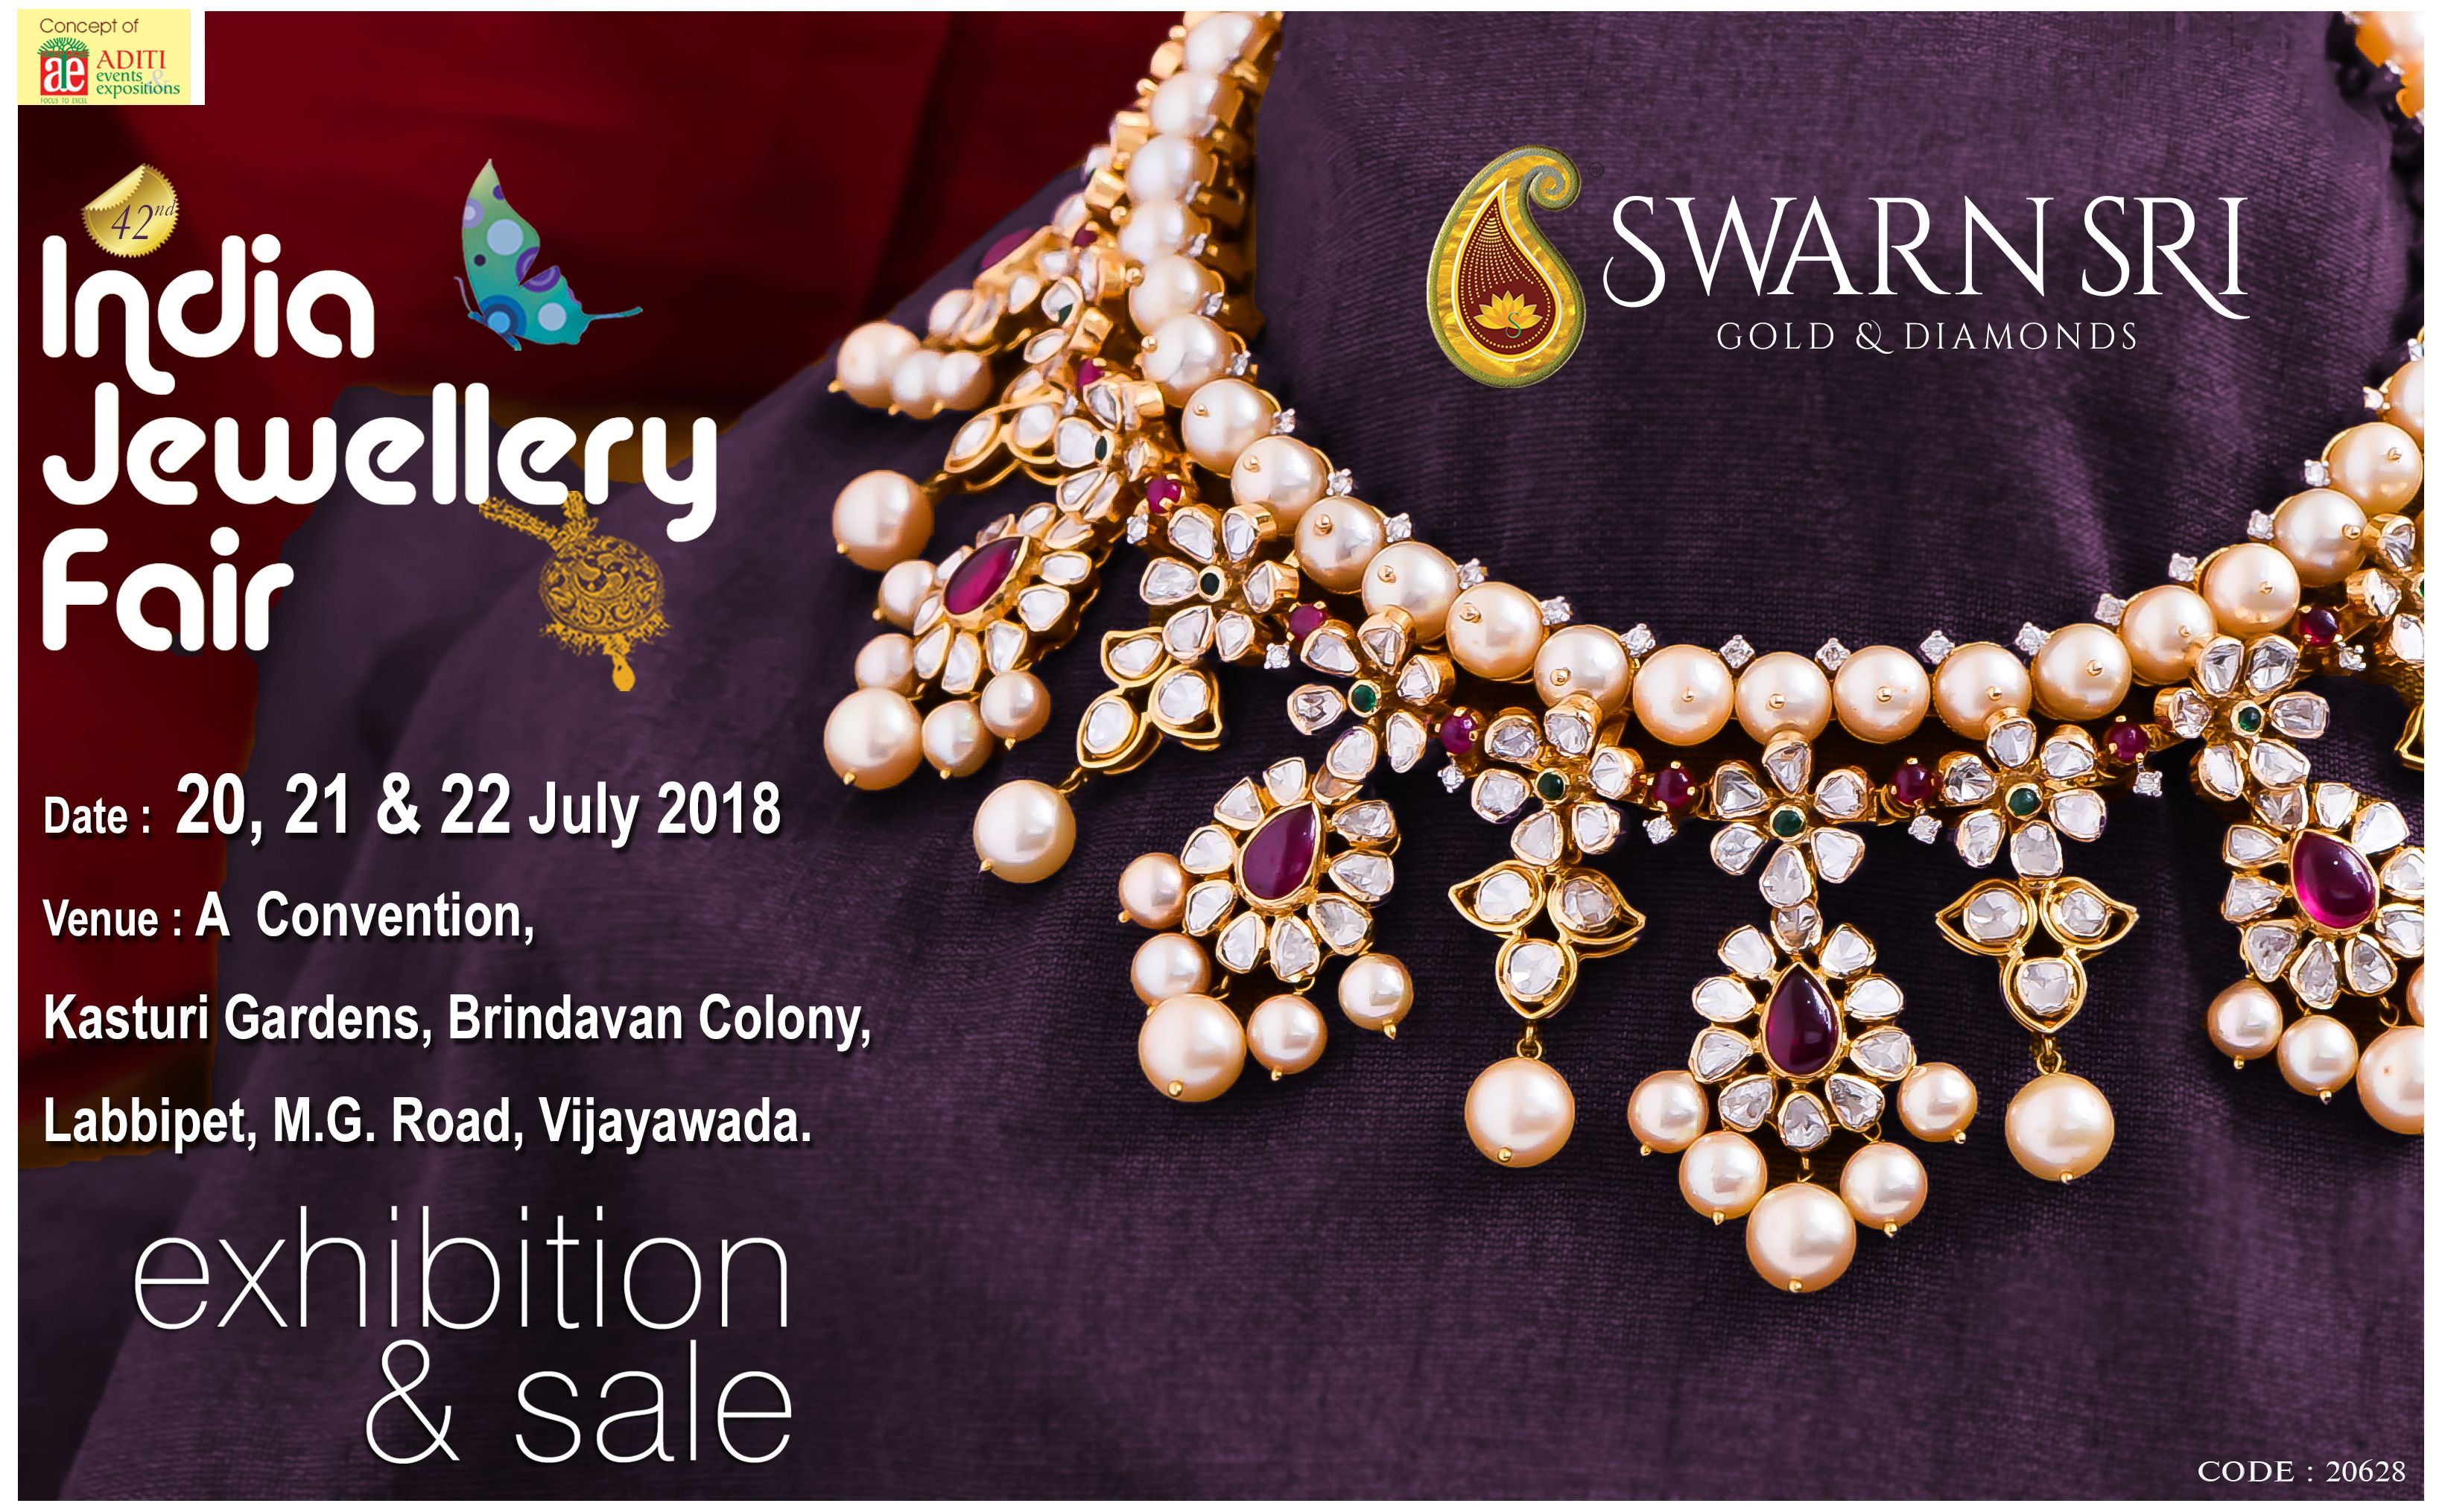 Two Days To Go For 42nd India Jewellery Fair Exhibition Sale